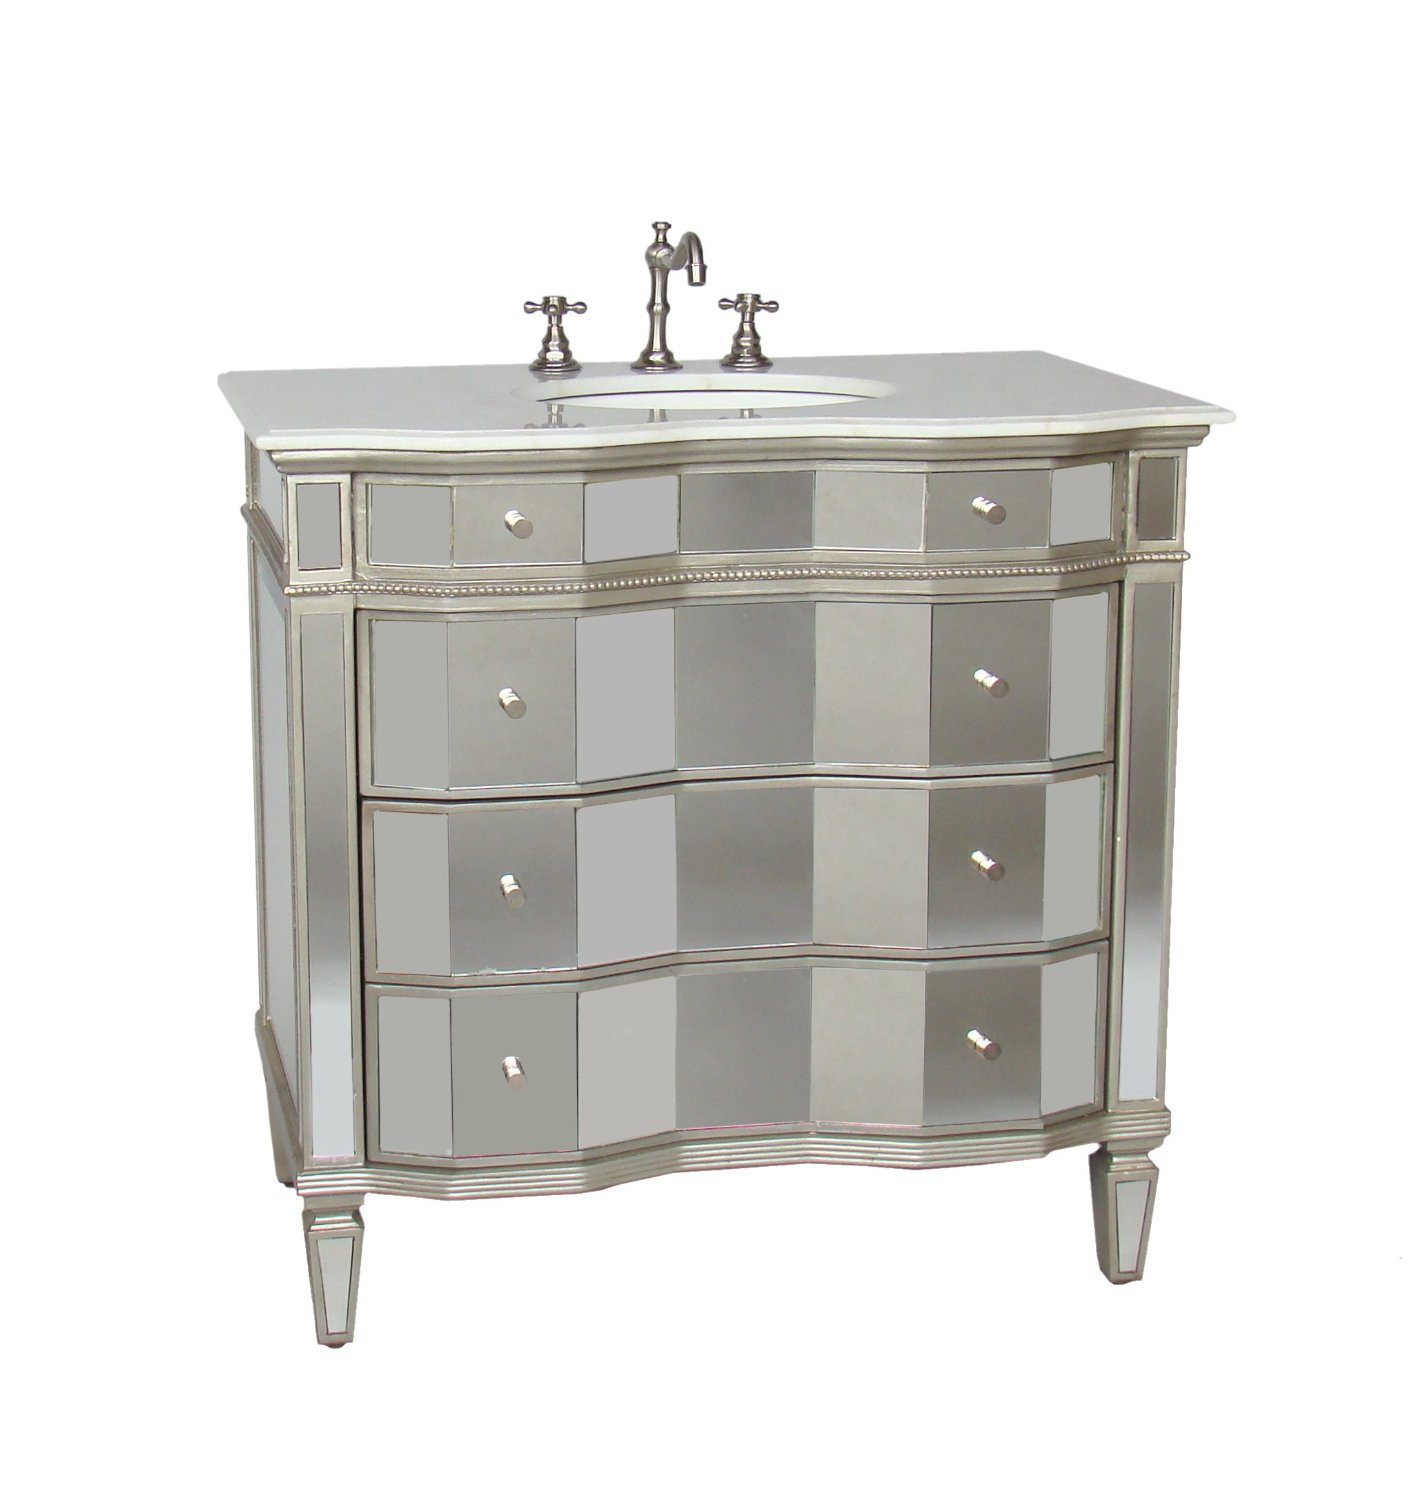 Adelina 36 inch Mirrored Bathroom Vanity White Carrara marble